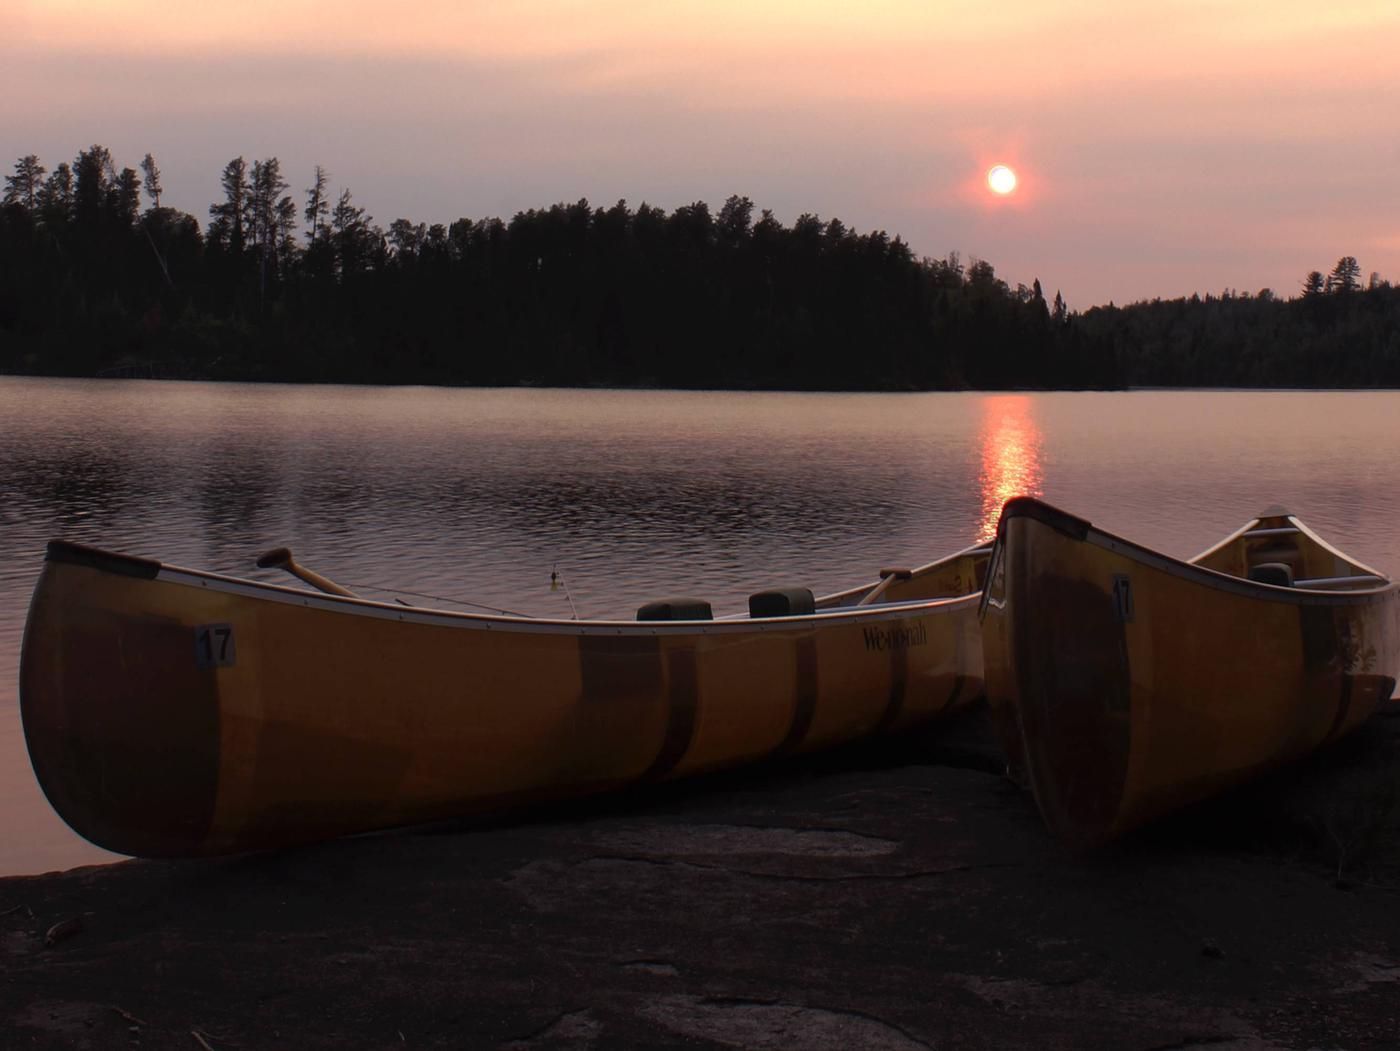 Sunset Over Canoes, North Temperance Lake, Superior National Forest